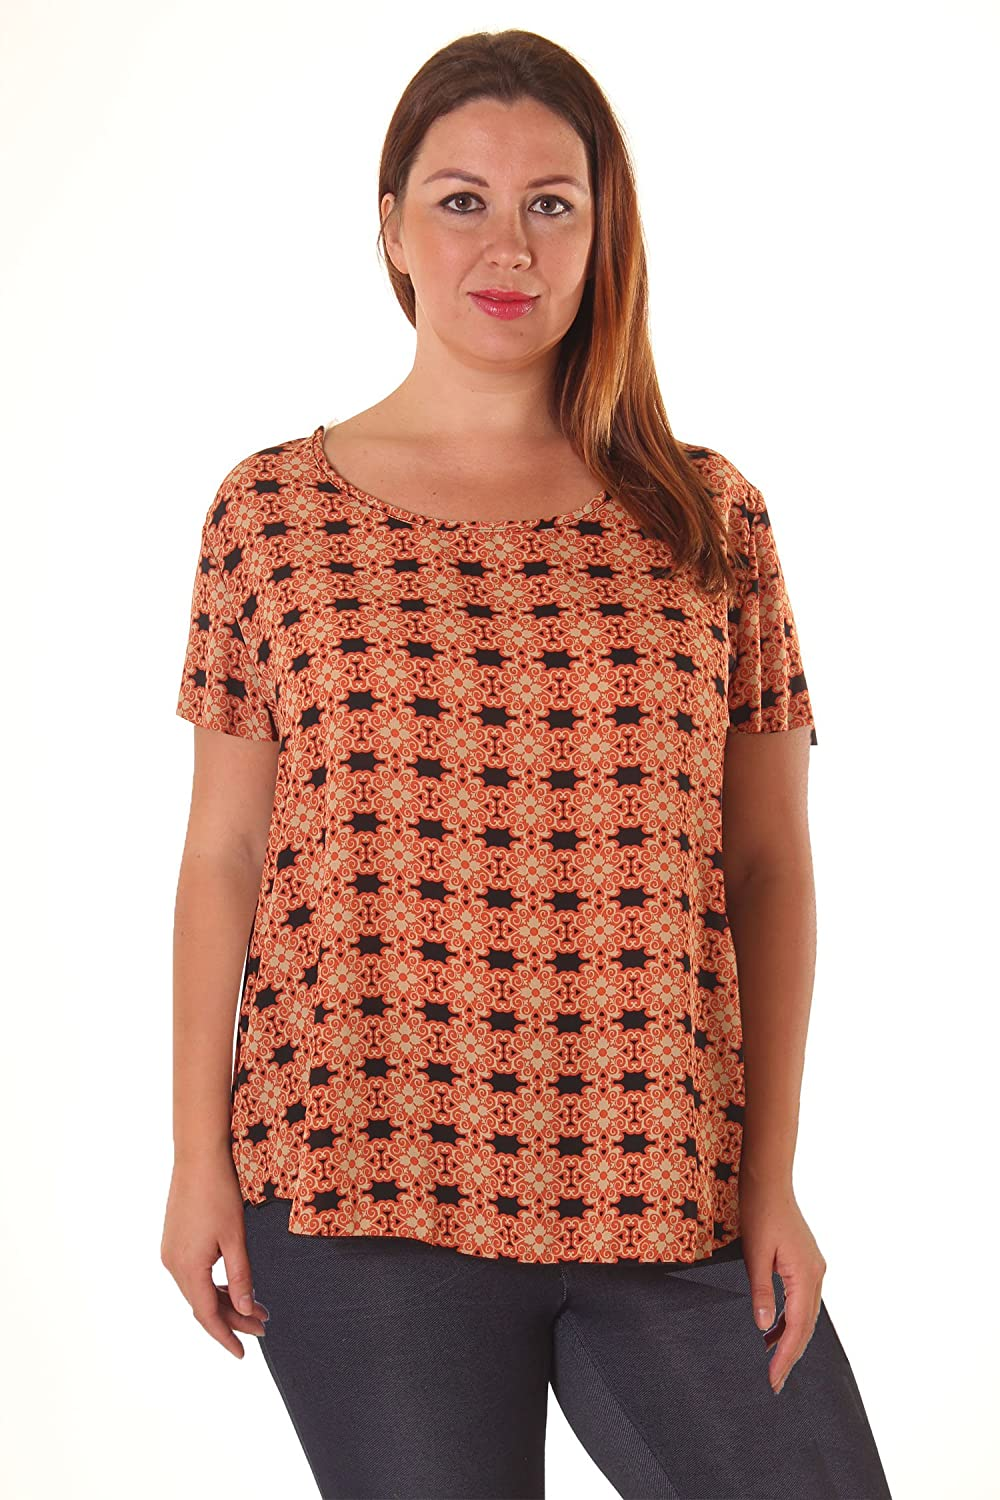 Hot Ginger Women's Tunic Top Short Sleeve Printed T-shirt Extra Size